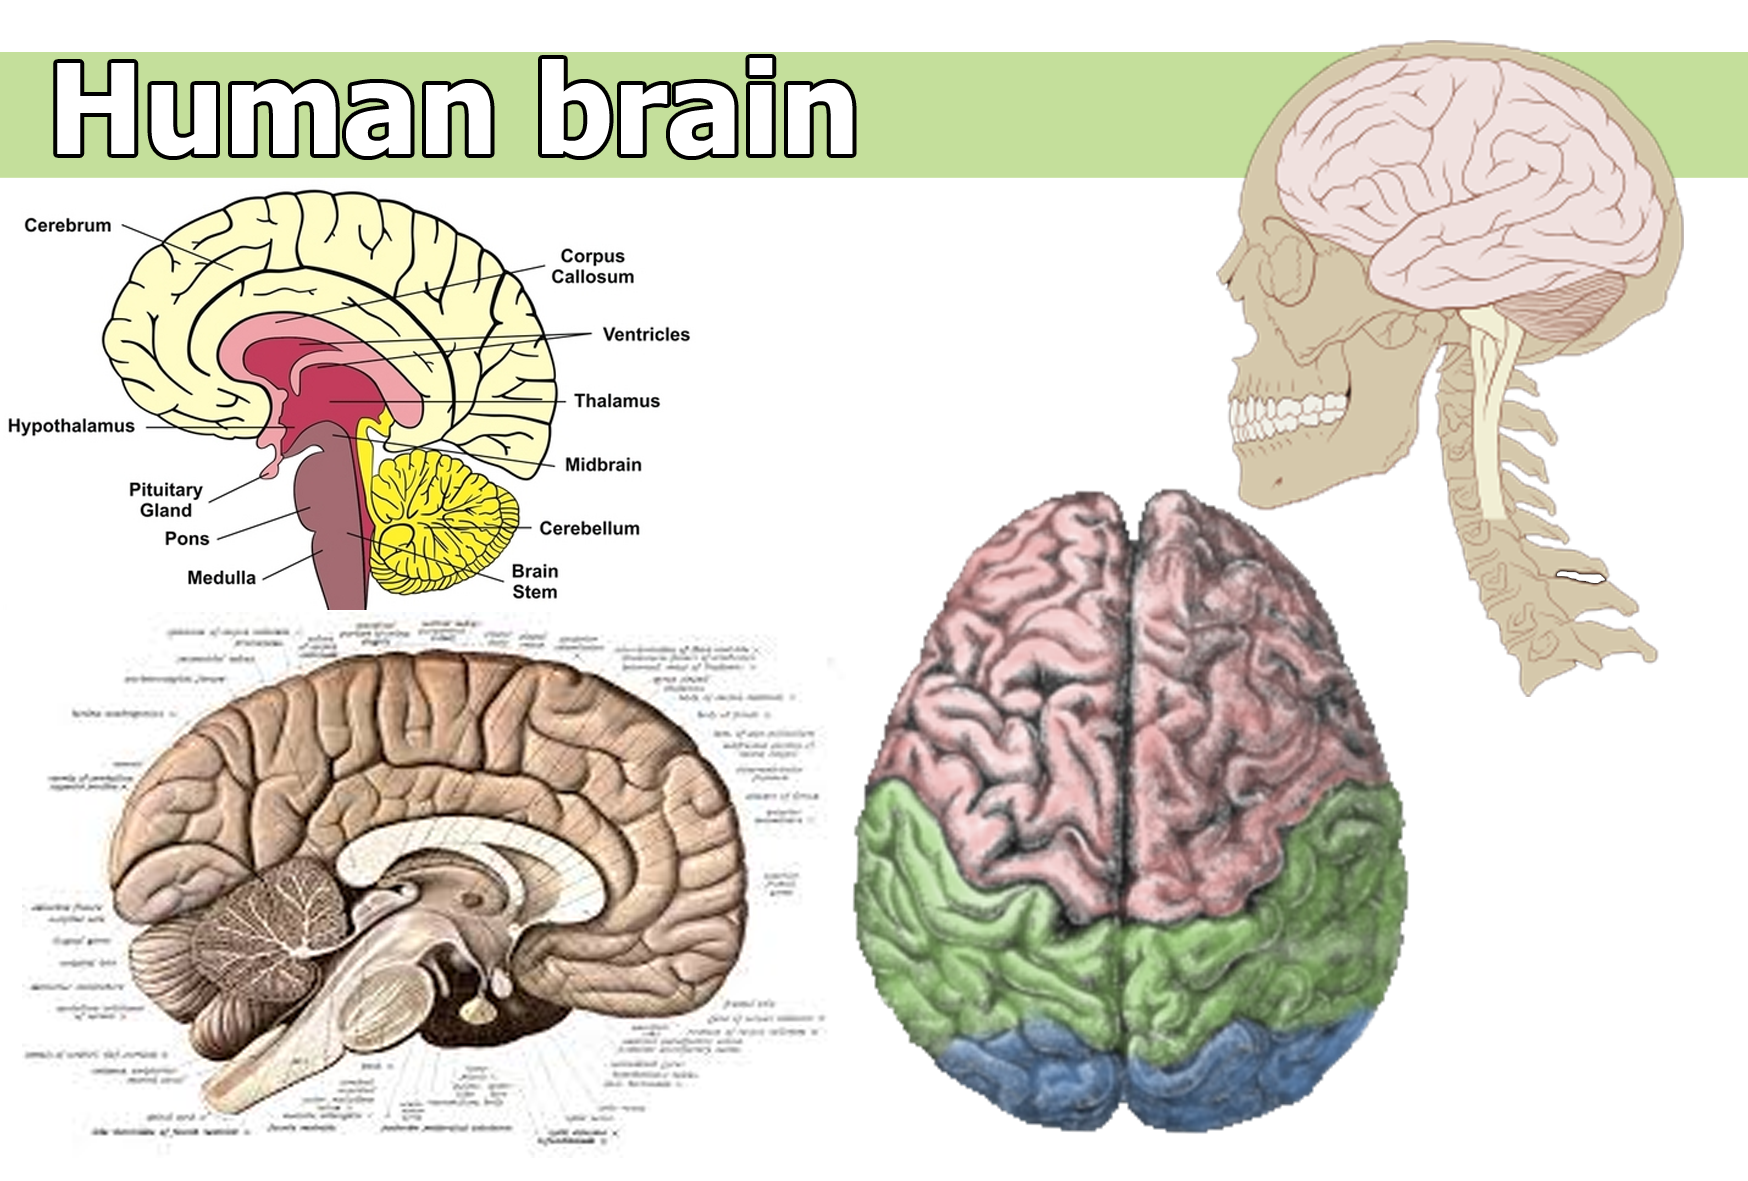 Human brain | Galnet Wiki | FANDOM powered by Wikia